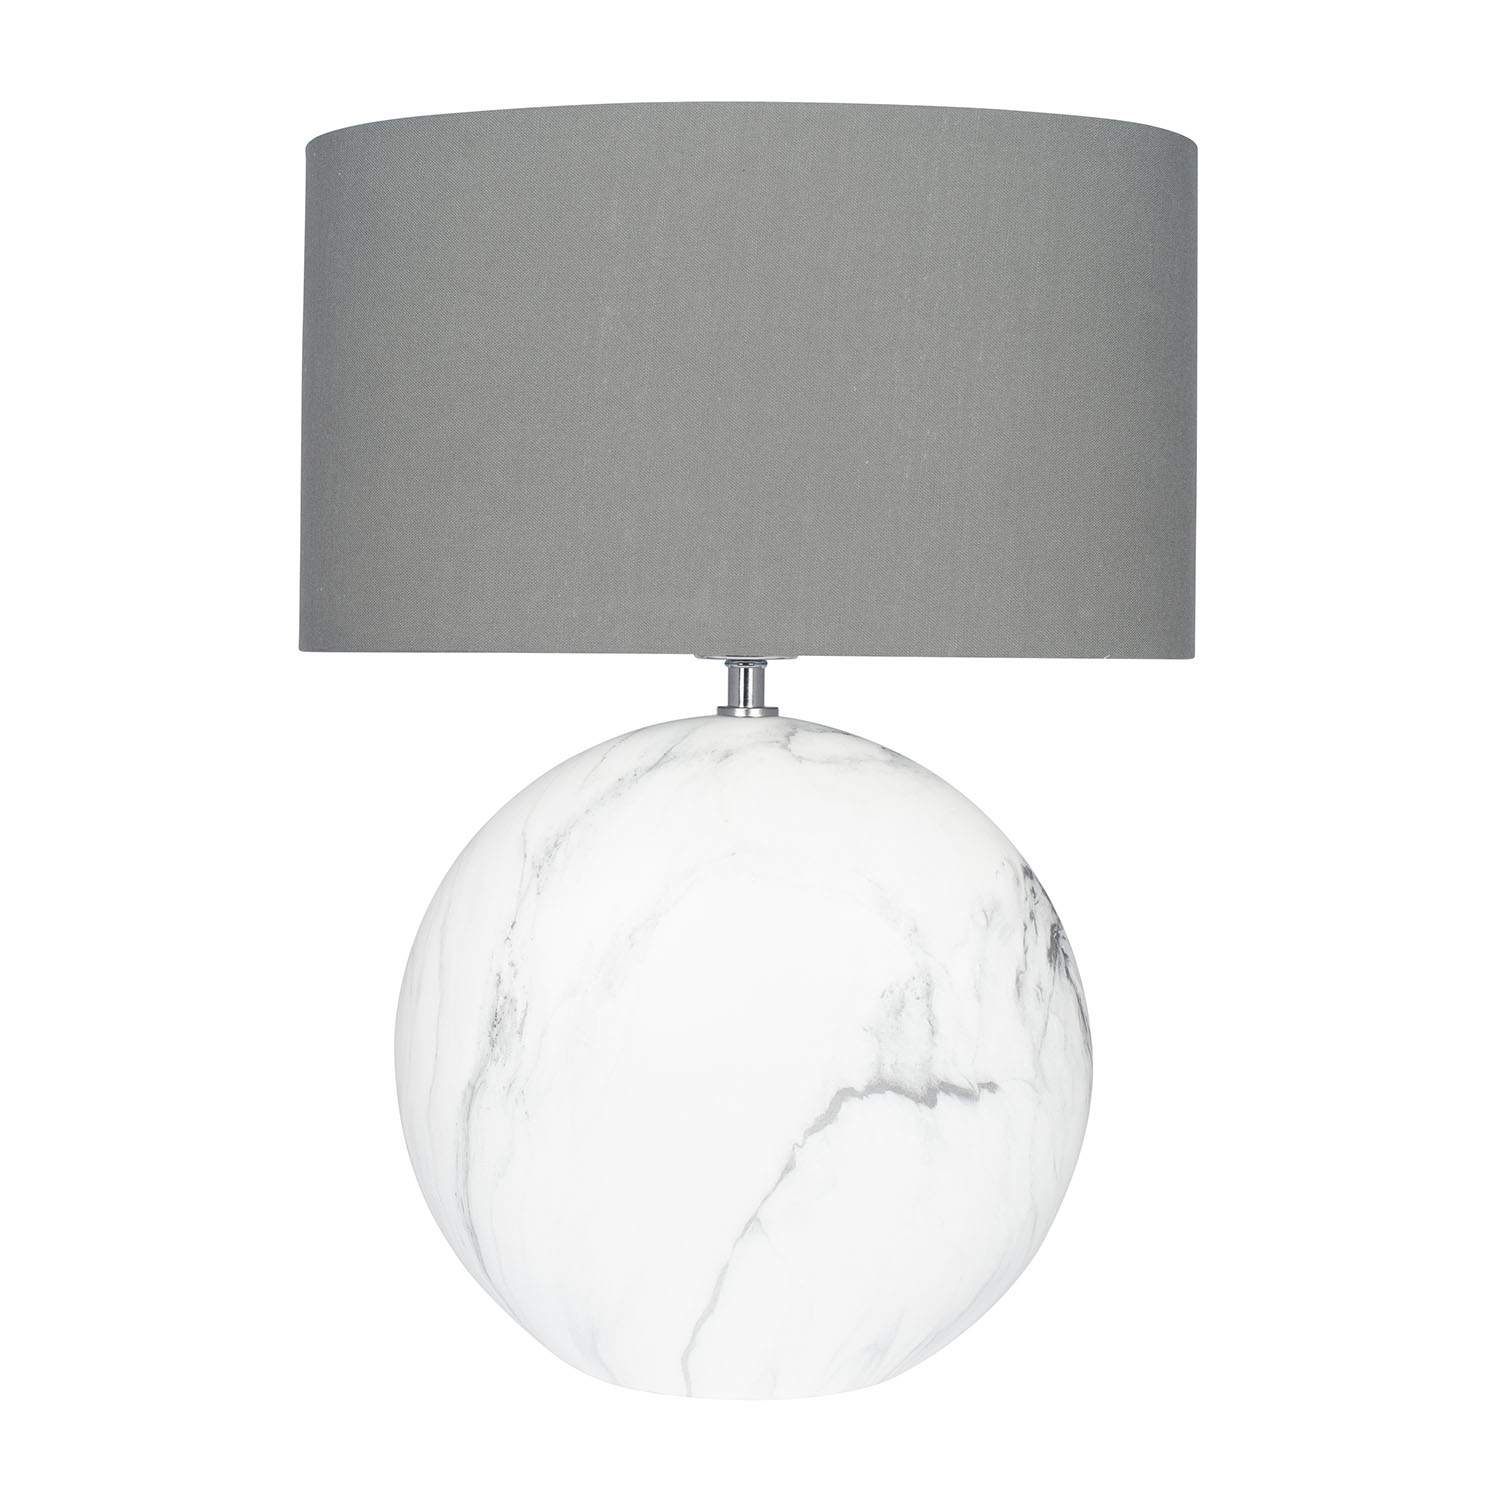 Image of Aimbry Marble Effect Ceramic Table Lamp, Grey